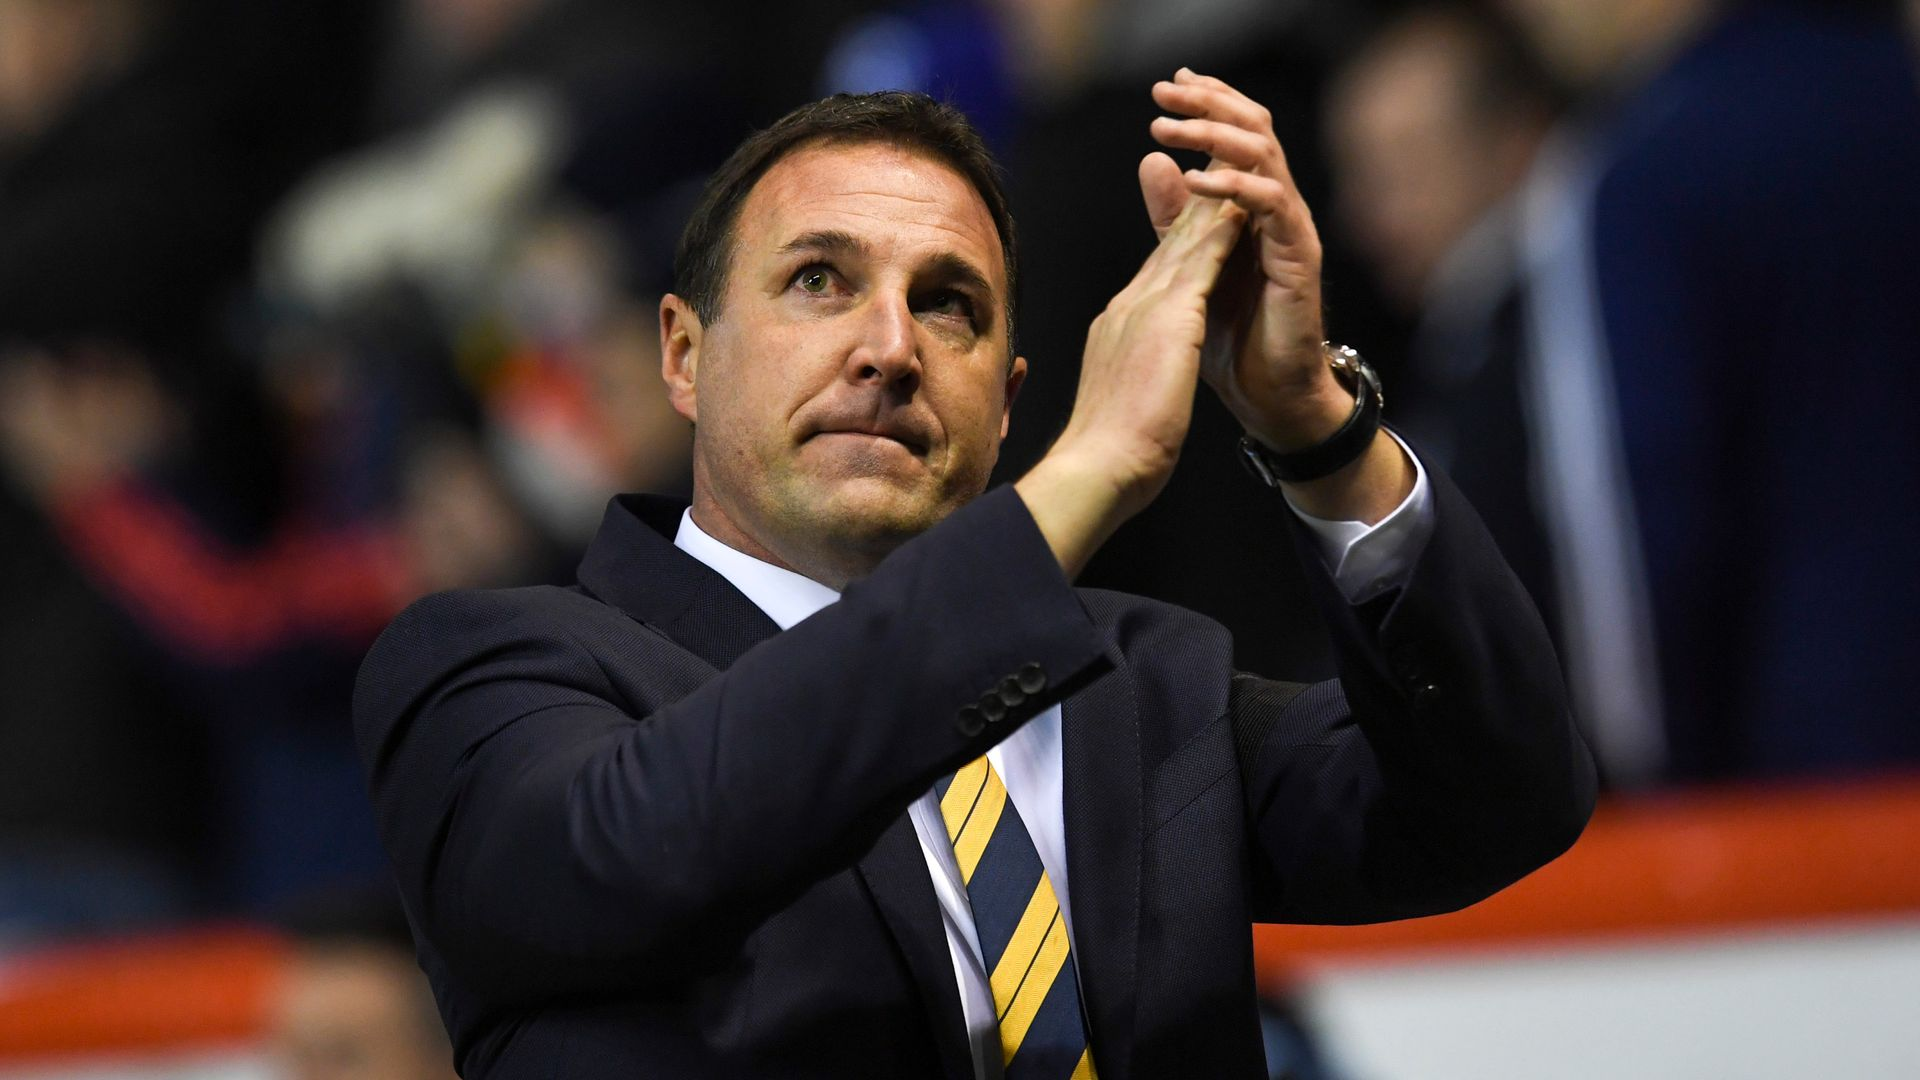 Mackay set for Dundee United talks